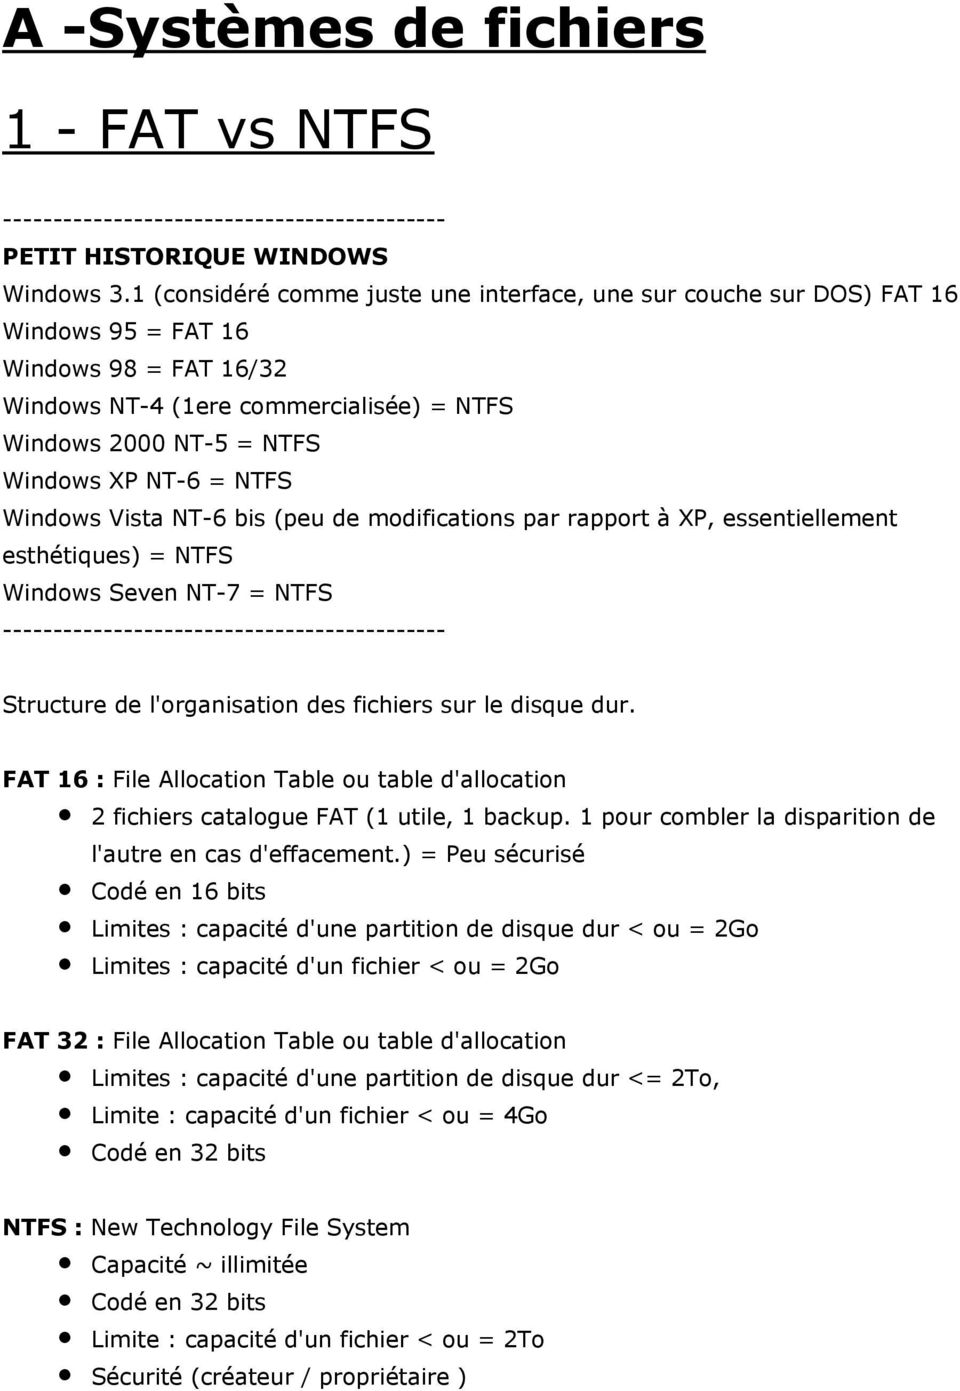 NTFS Windows Vista NT-6 bis (peu de modifications par rapport à XP, essentiellement esthétiques) = NTFS Windows Seven NT-7 = NTFS -------------------------------------------- Structure de